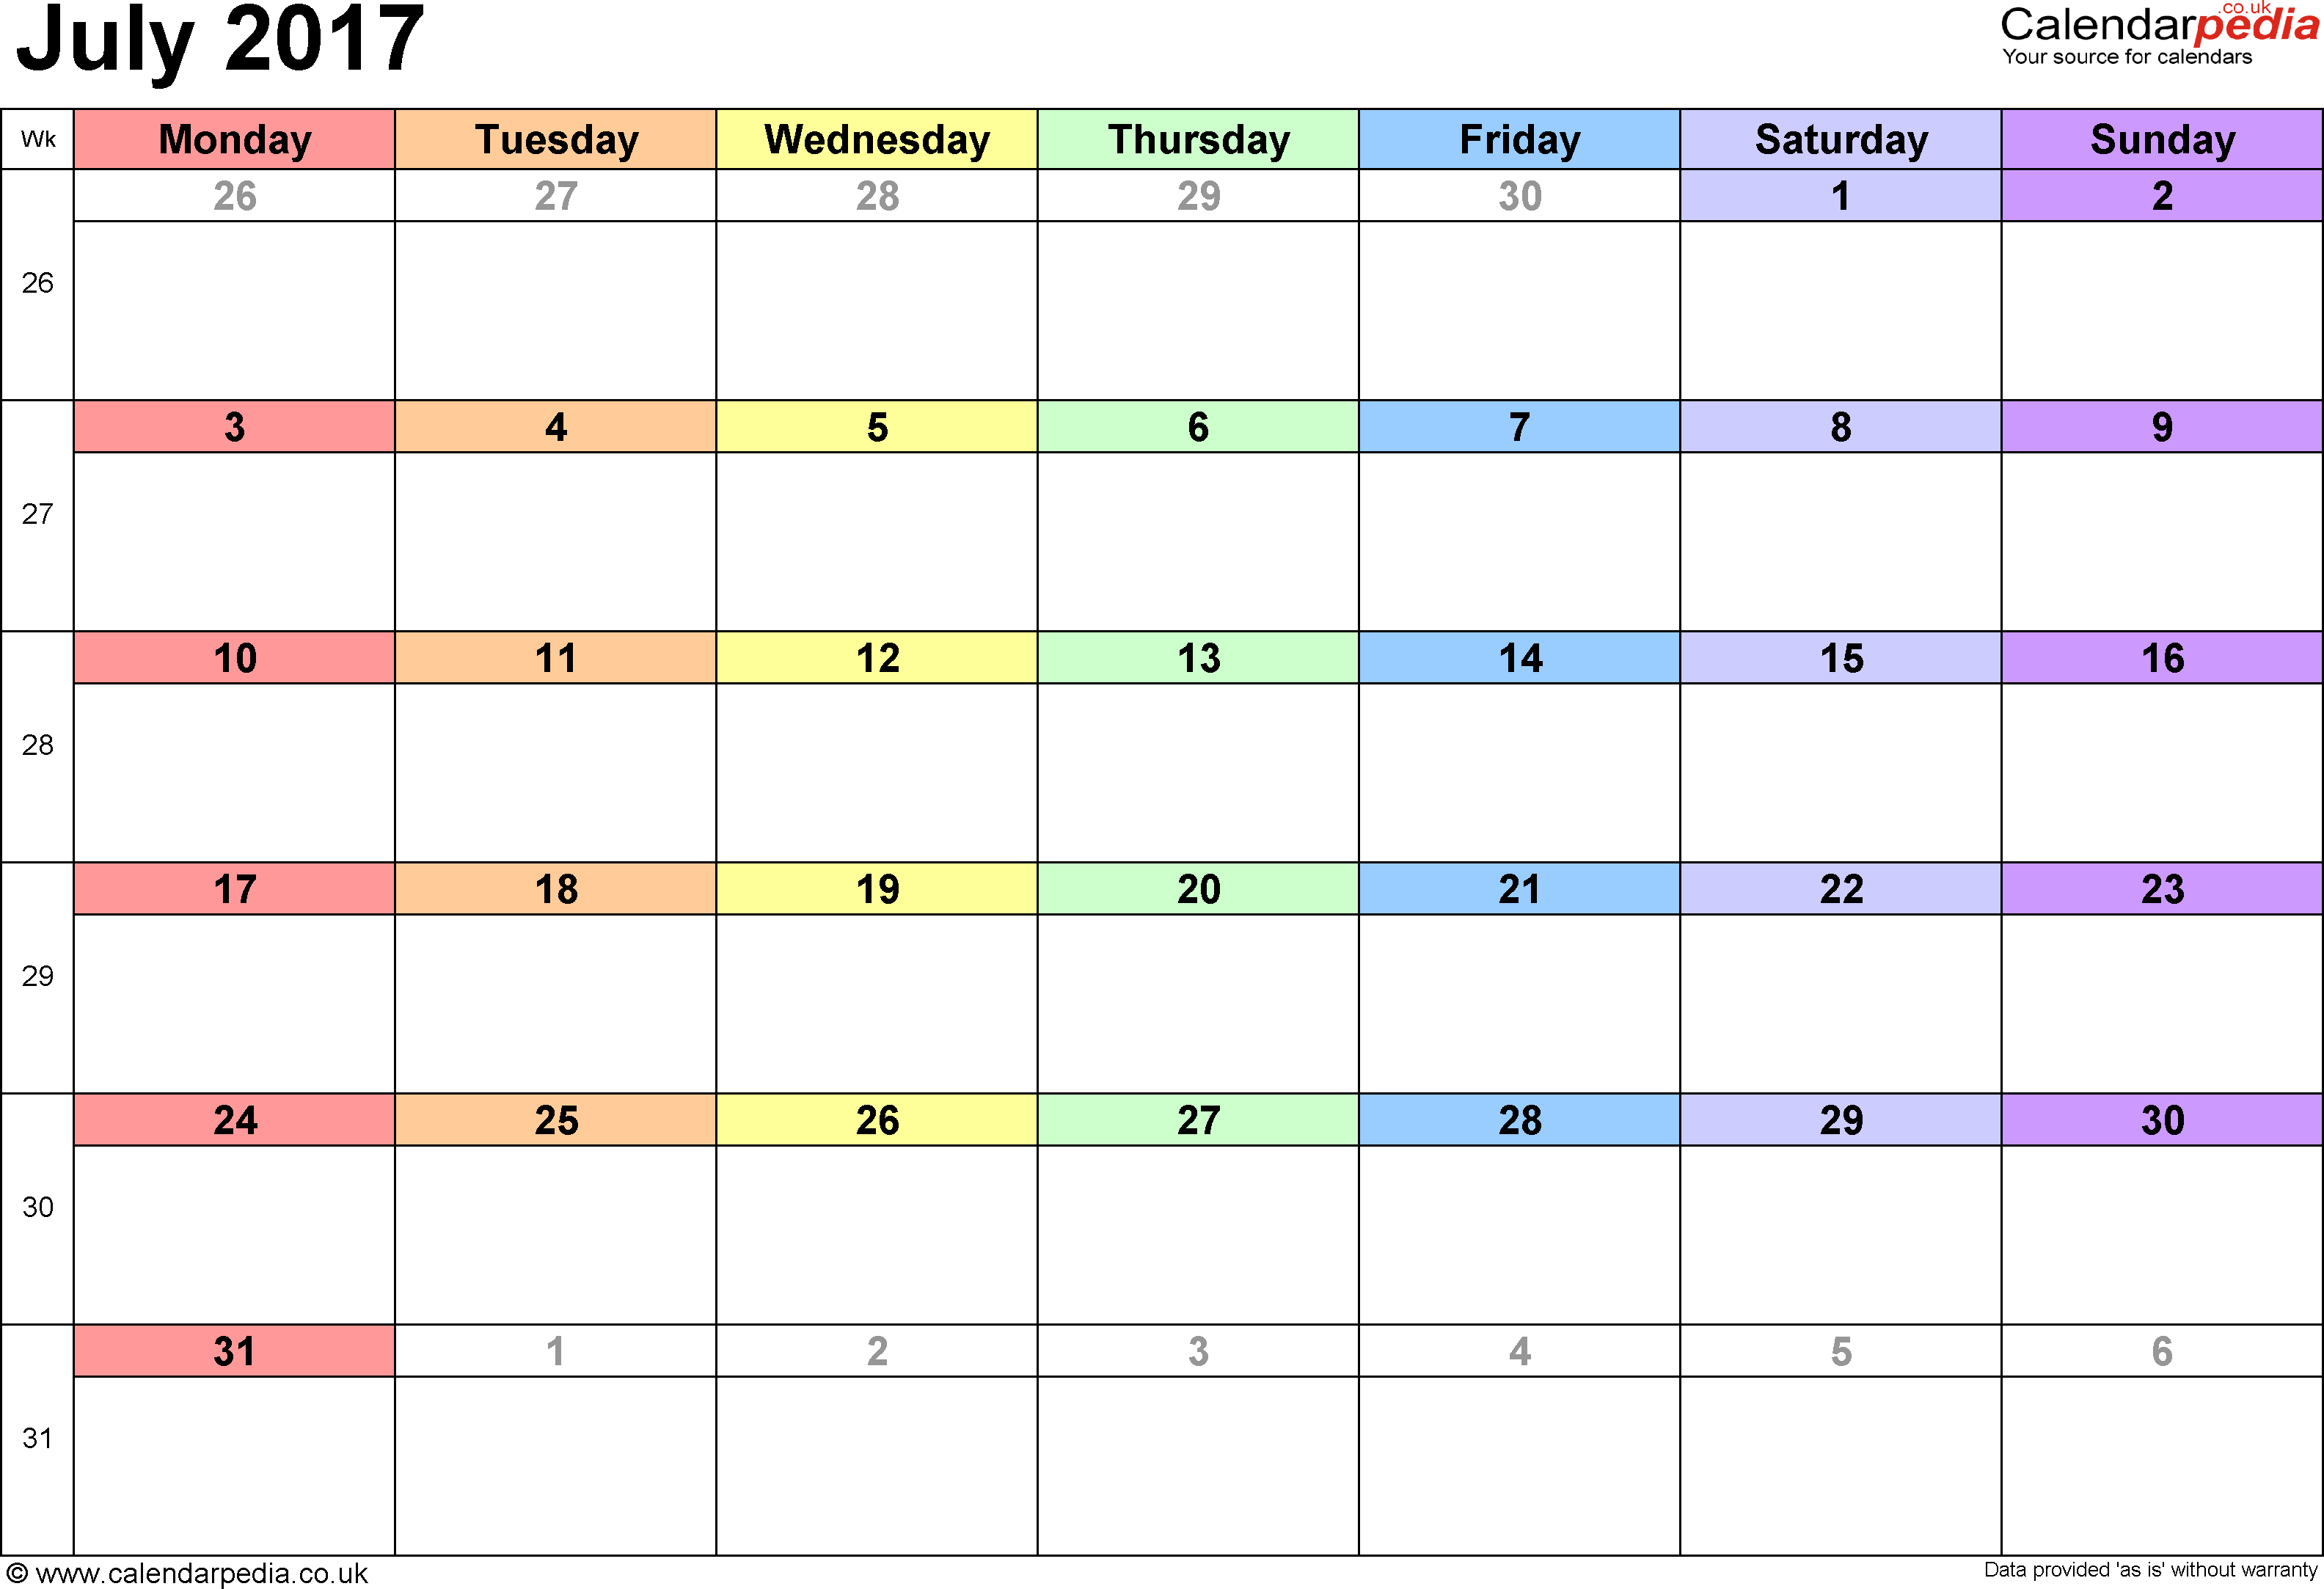 Calendar July 2017, landscape orientation, 1 page, with UK bank holidays and week numbers